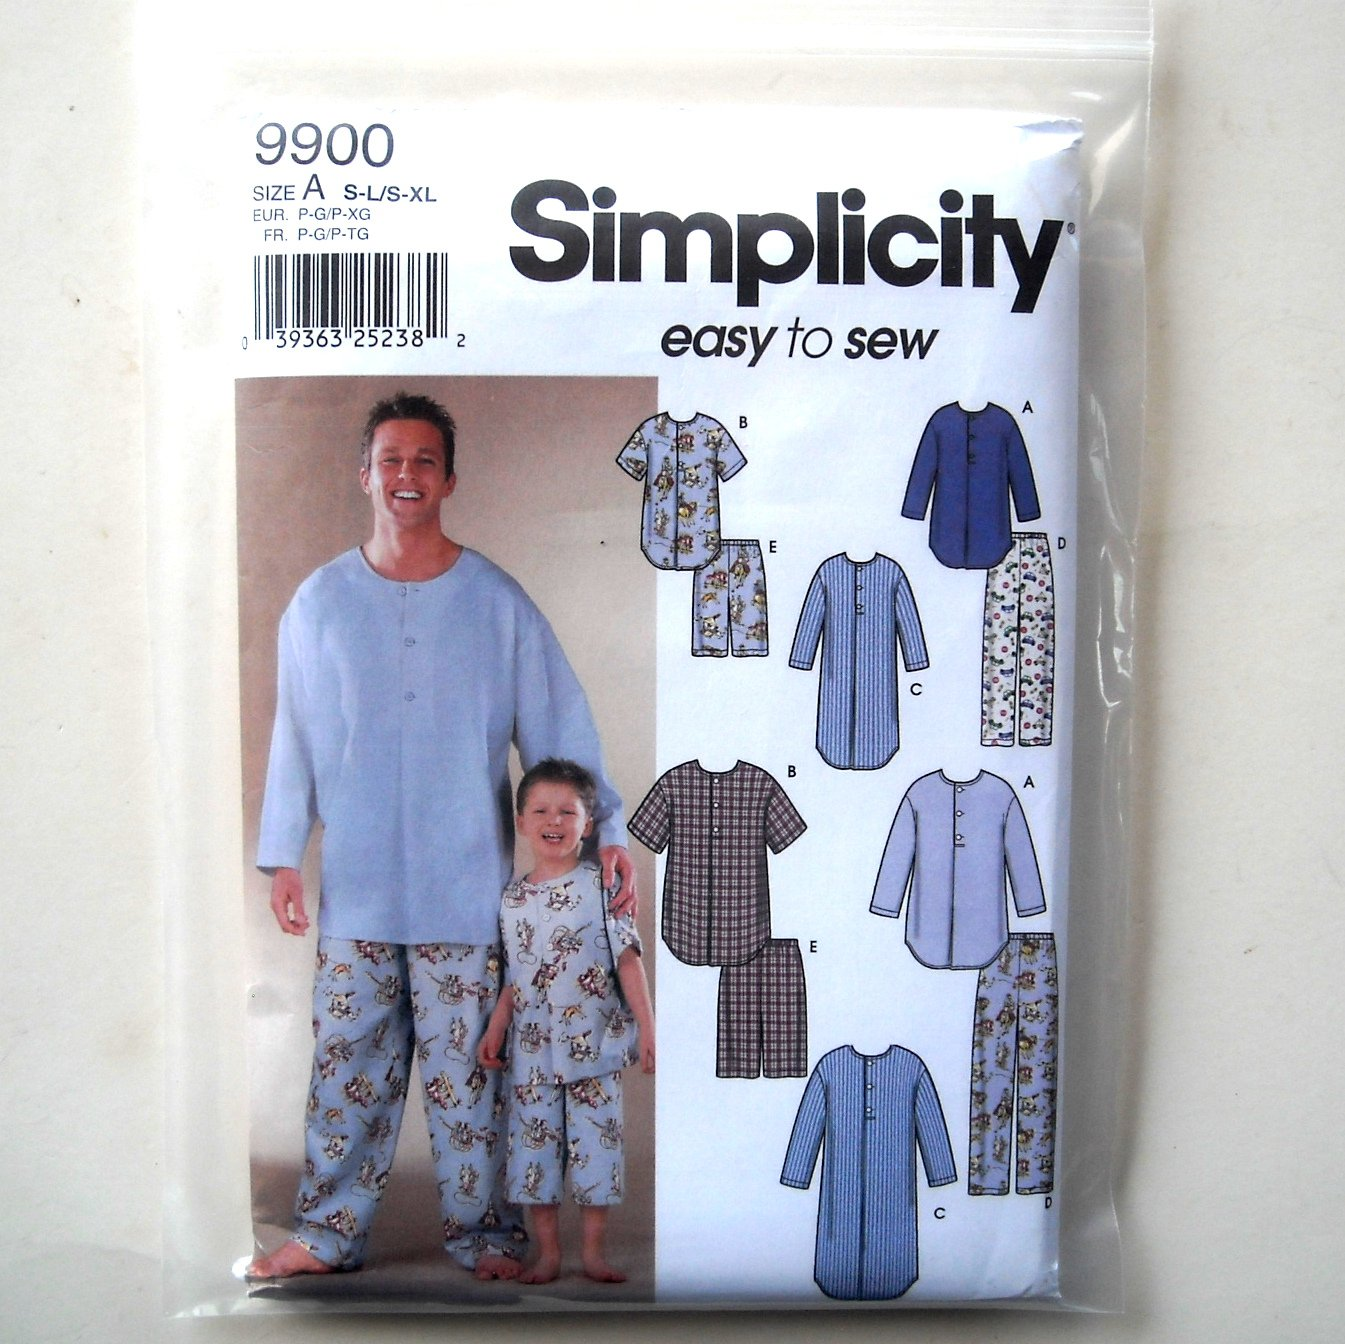 Boys Mens Pajamas Nightshirt S L XL Simplicity Sewing Pattern 9900